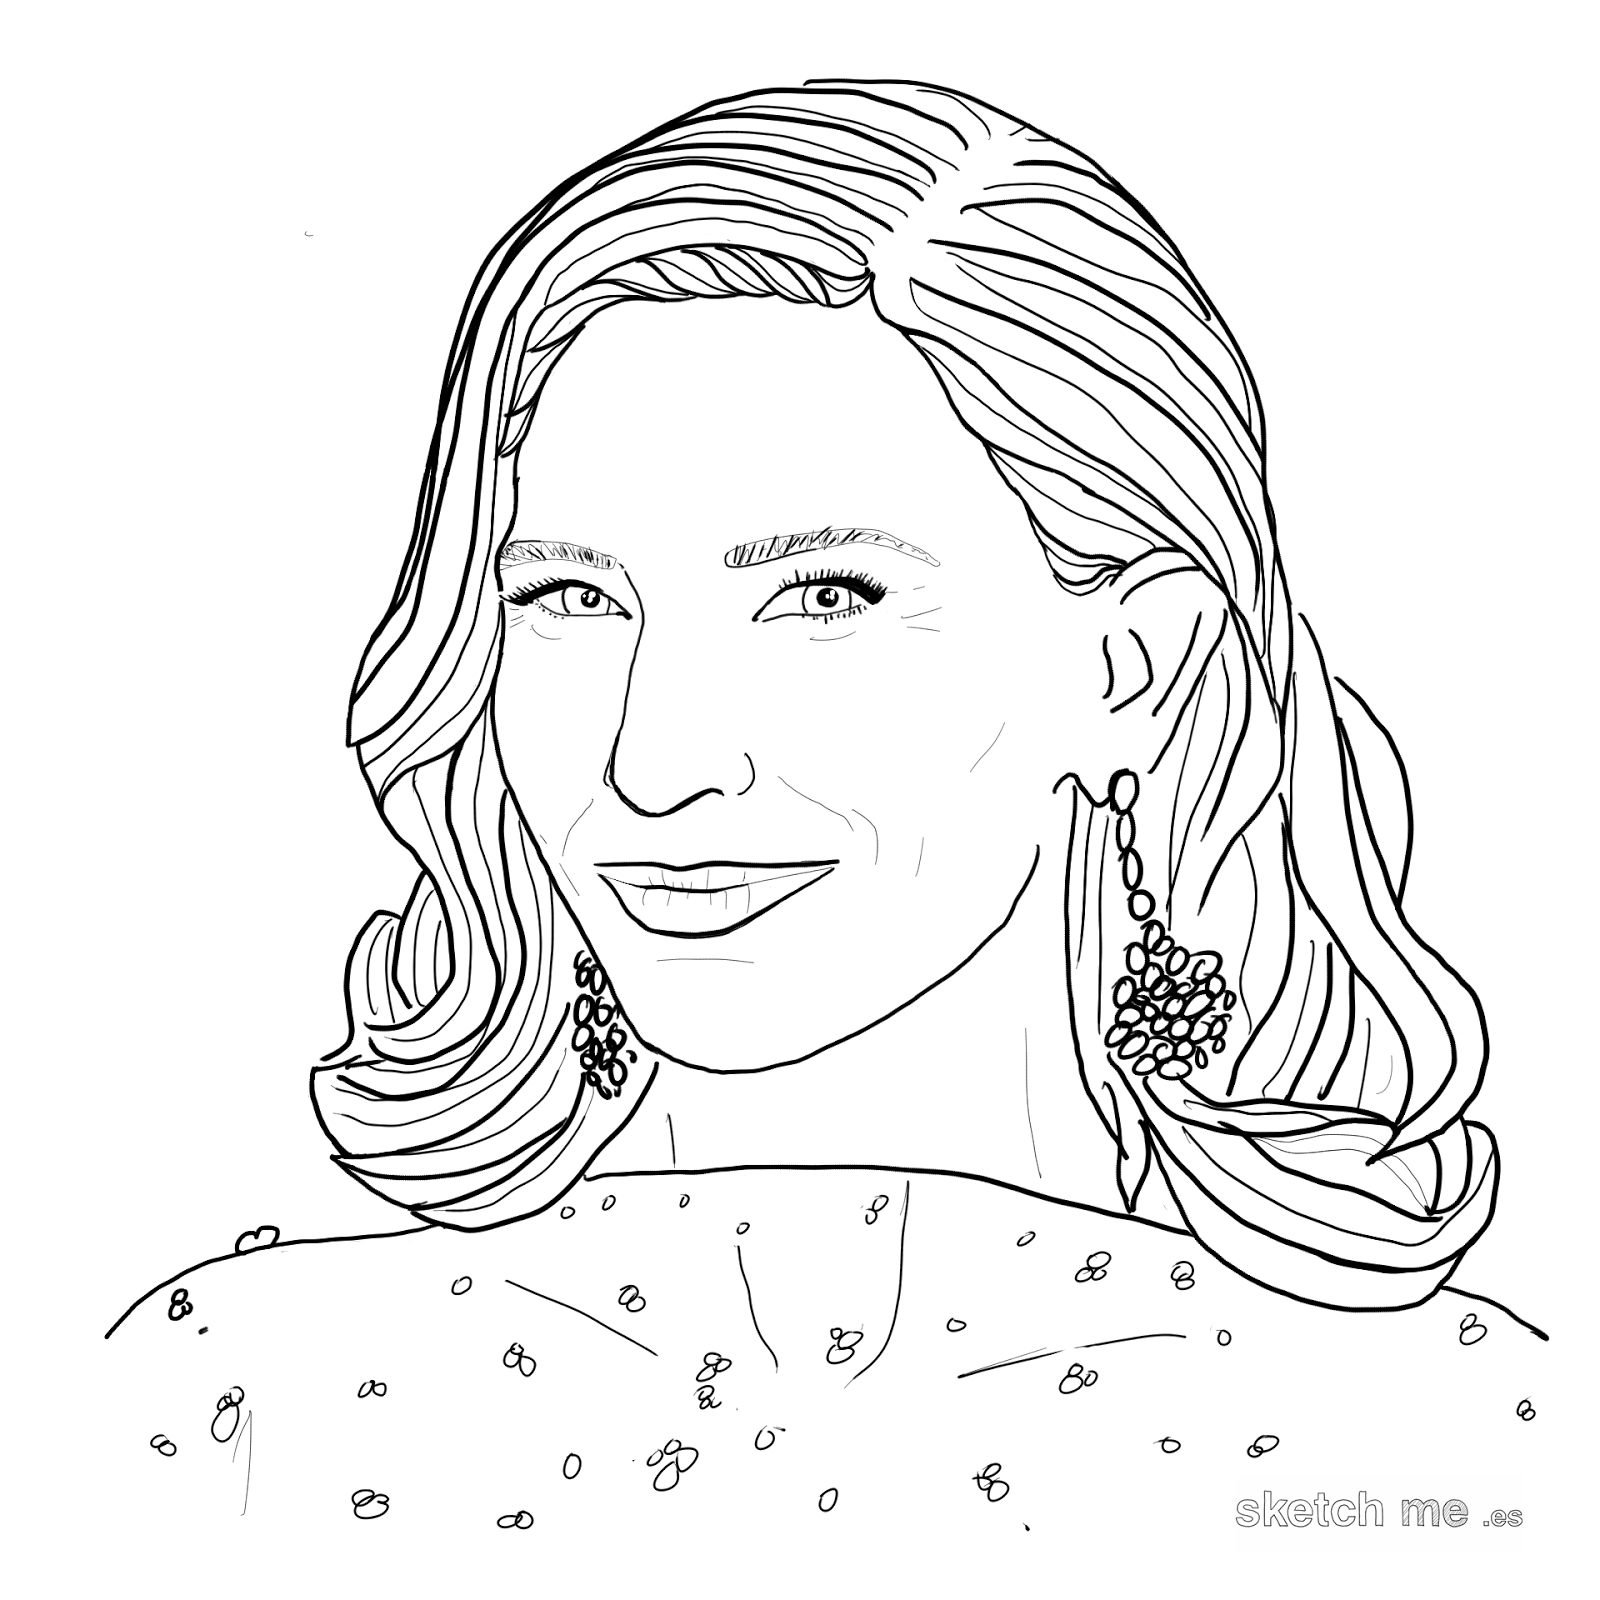 cate-blanchett-sketch-me-custom-portraits-for-facebook-and-twitter-profiles